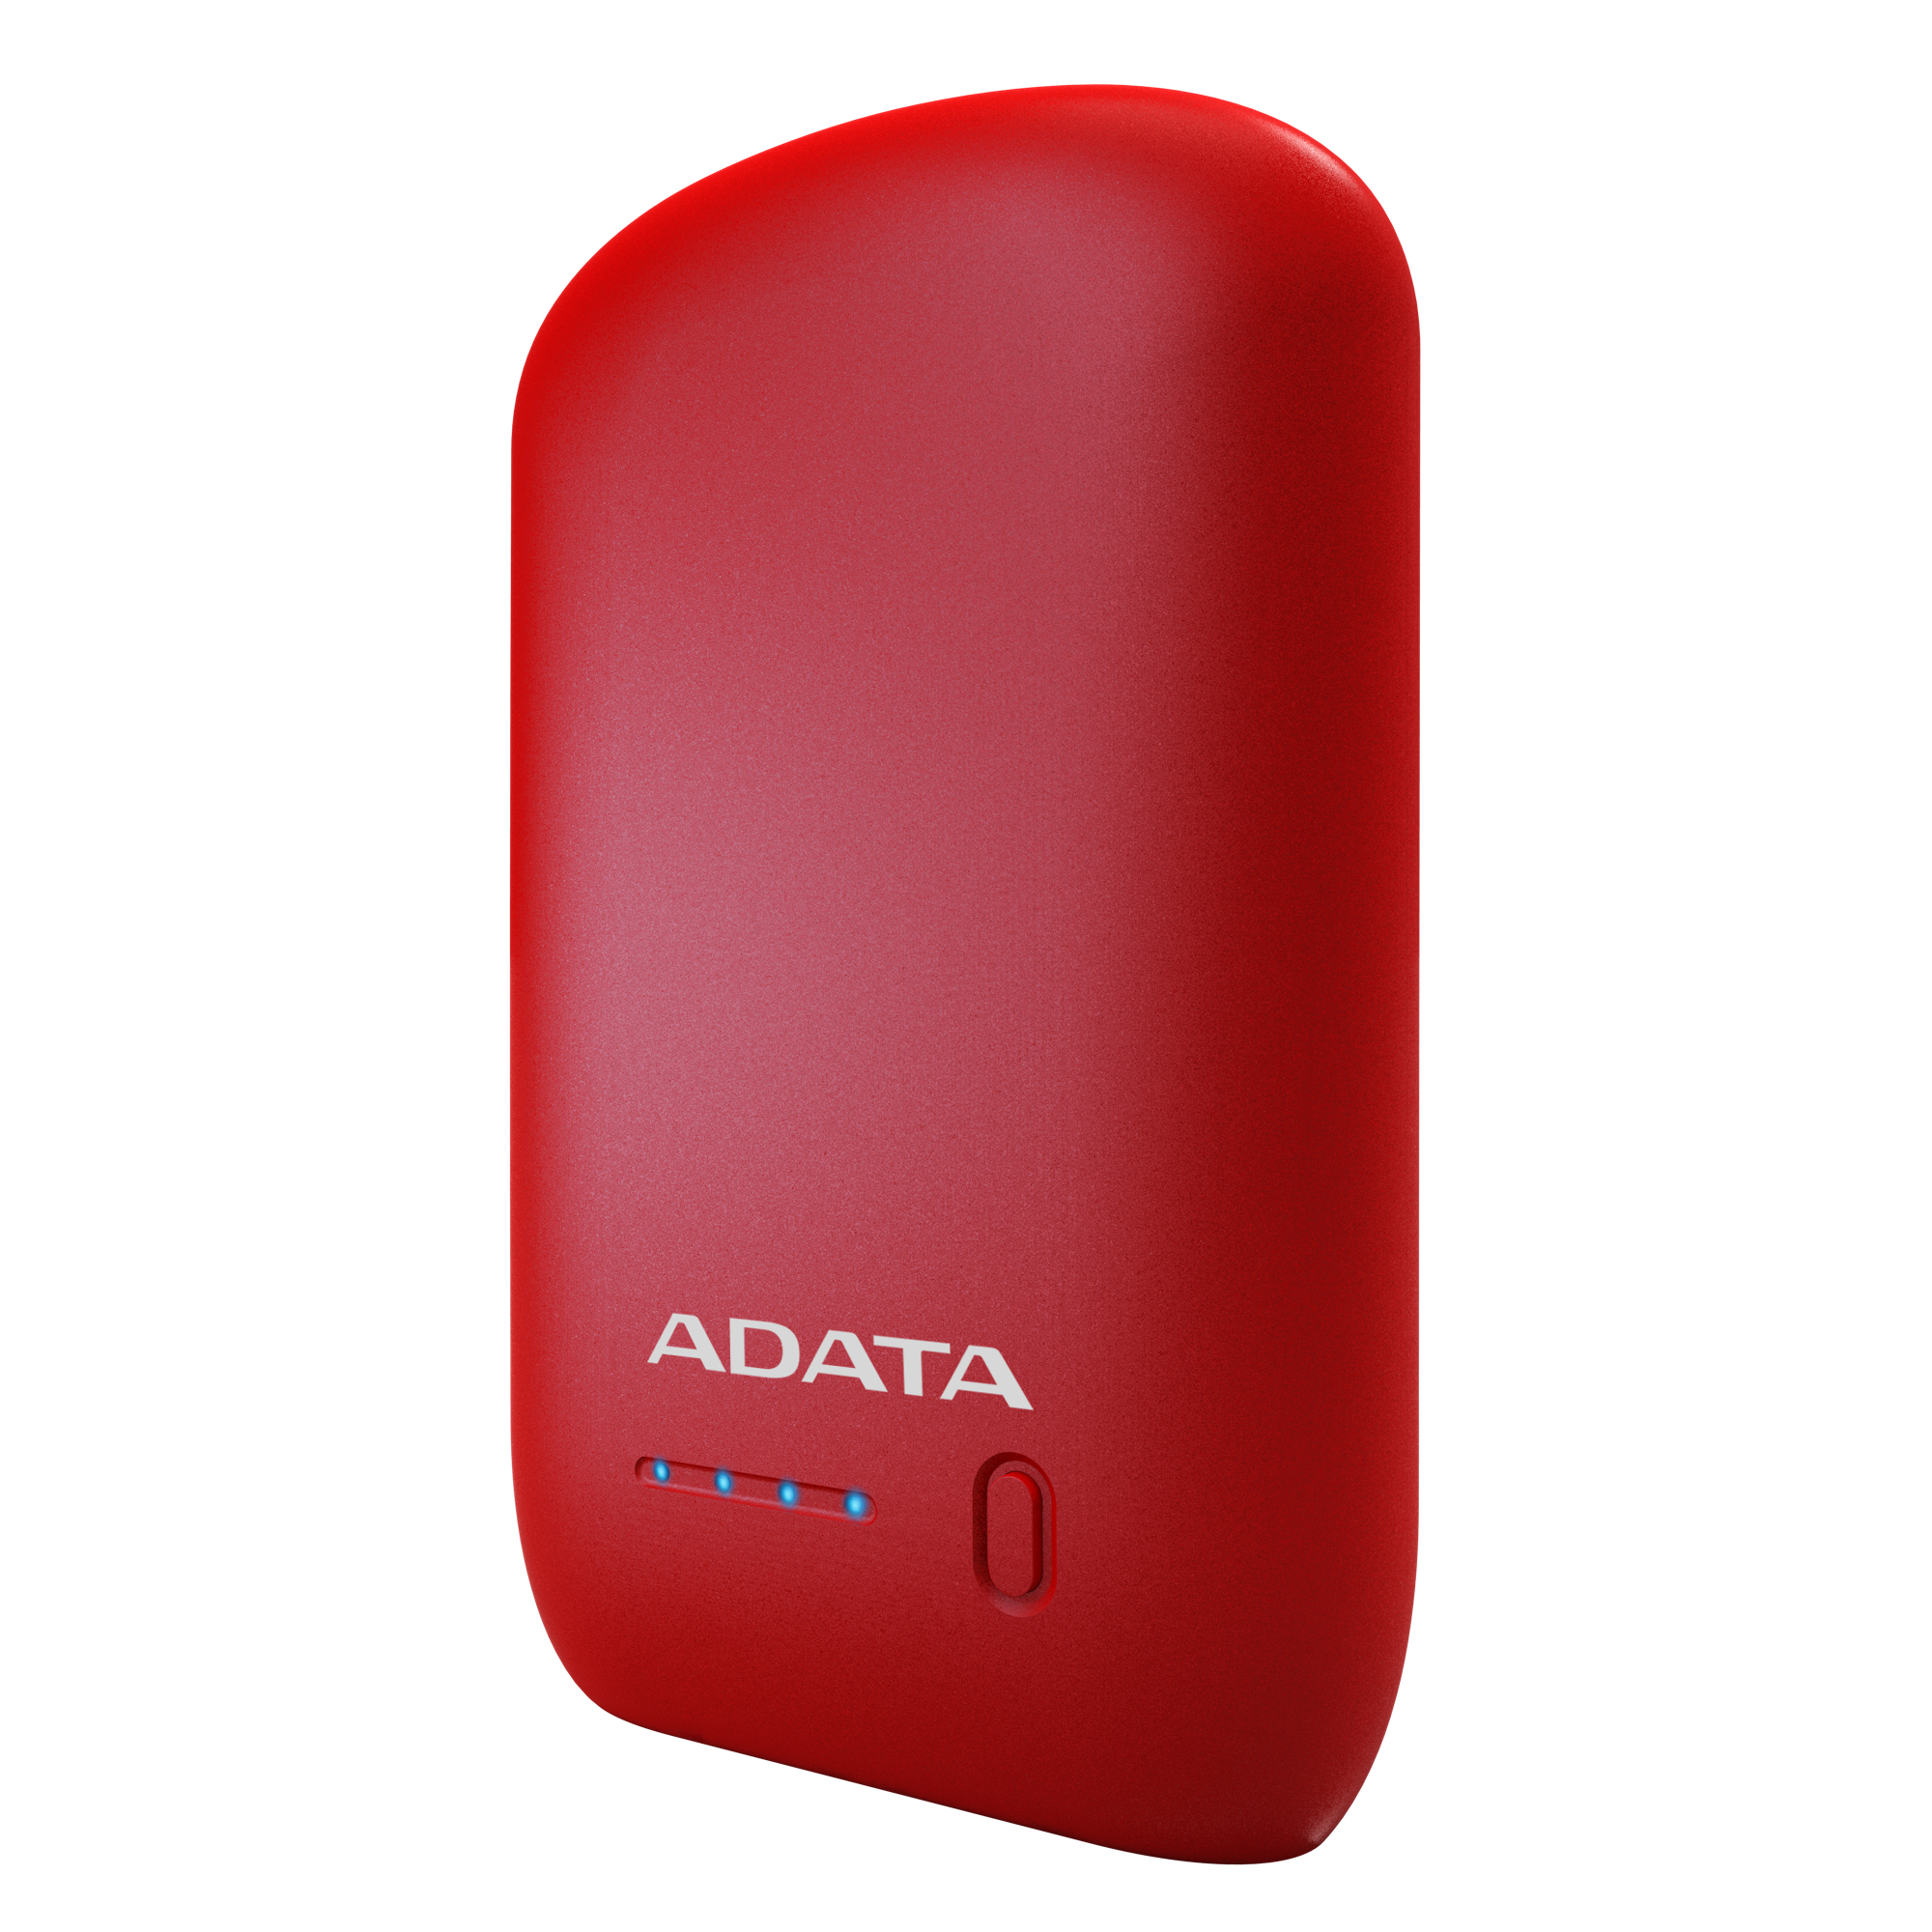 PowerBank ADATA P10050 10050mAh, red